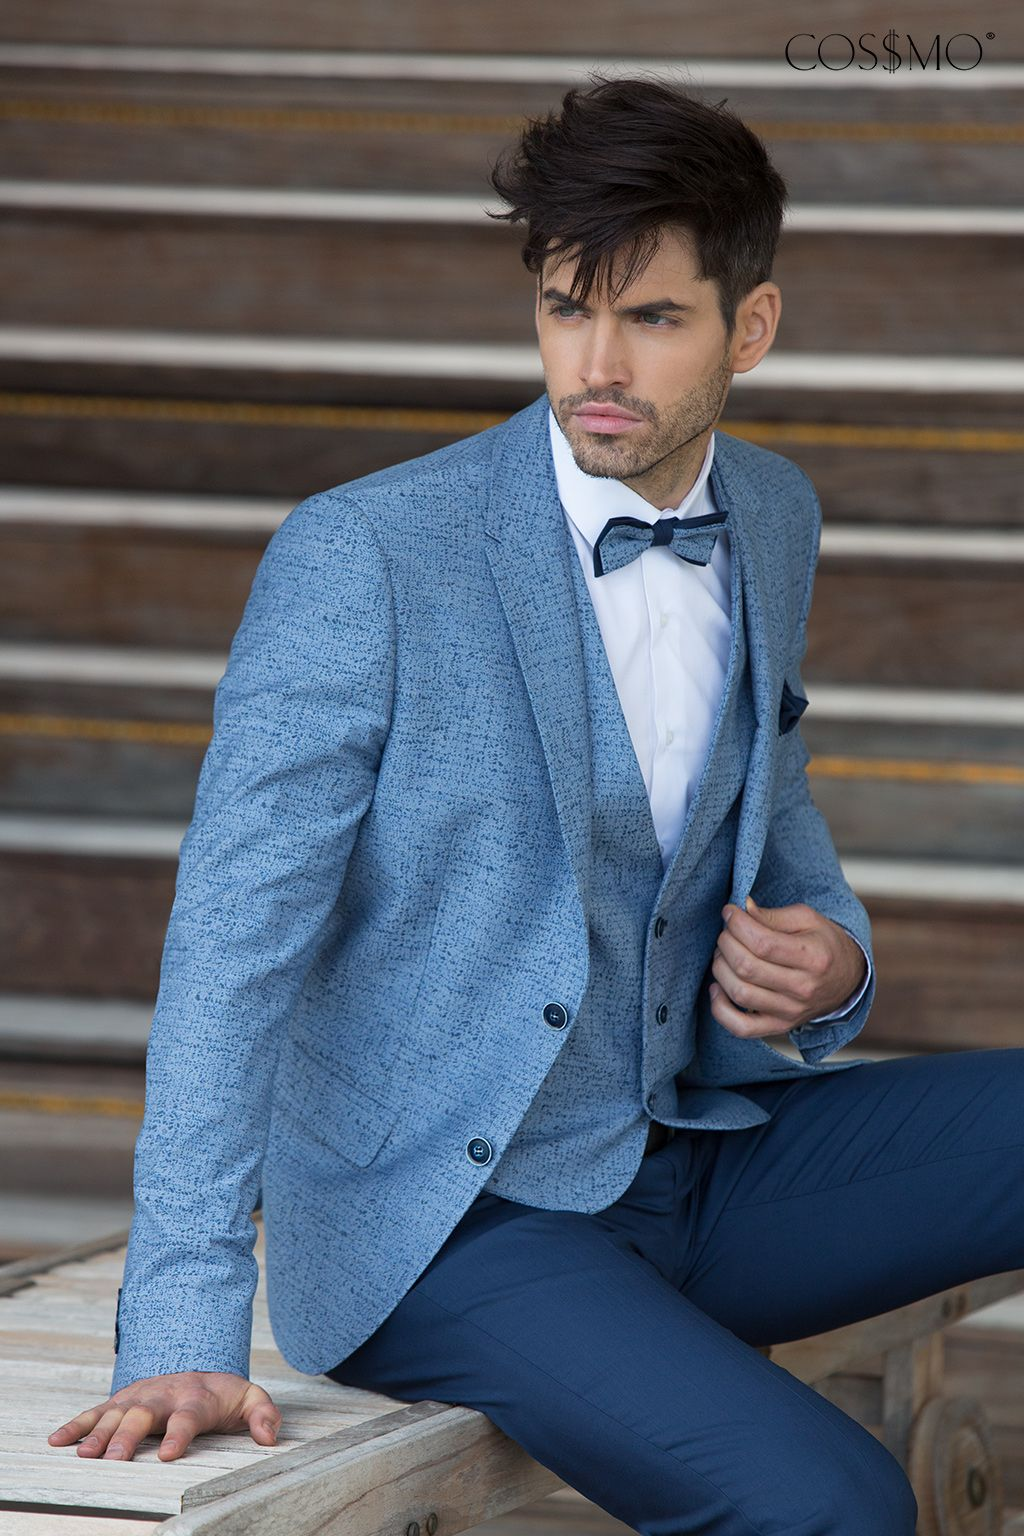 Suits Light Blue Label - Cossmo | The wedding <3 | Pinterest | Male ...